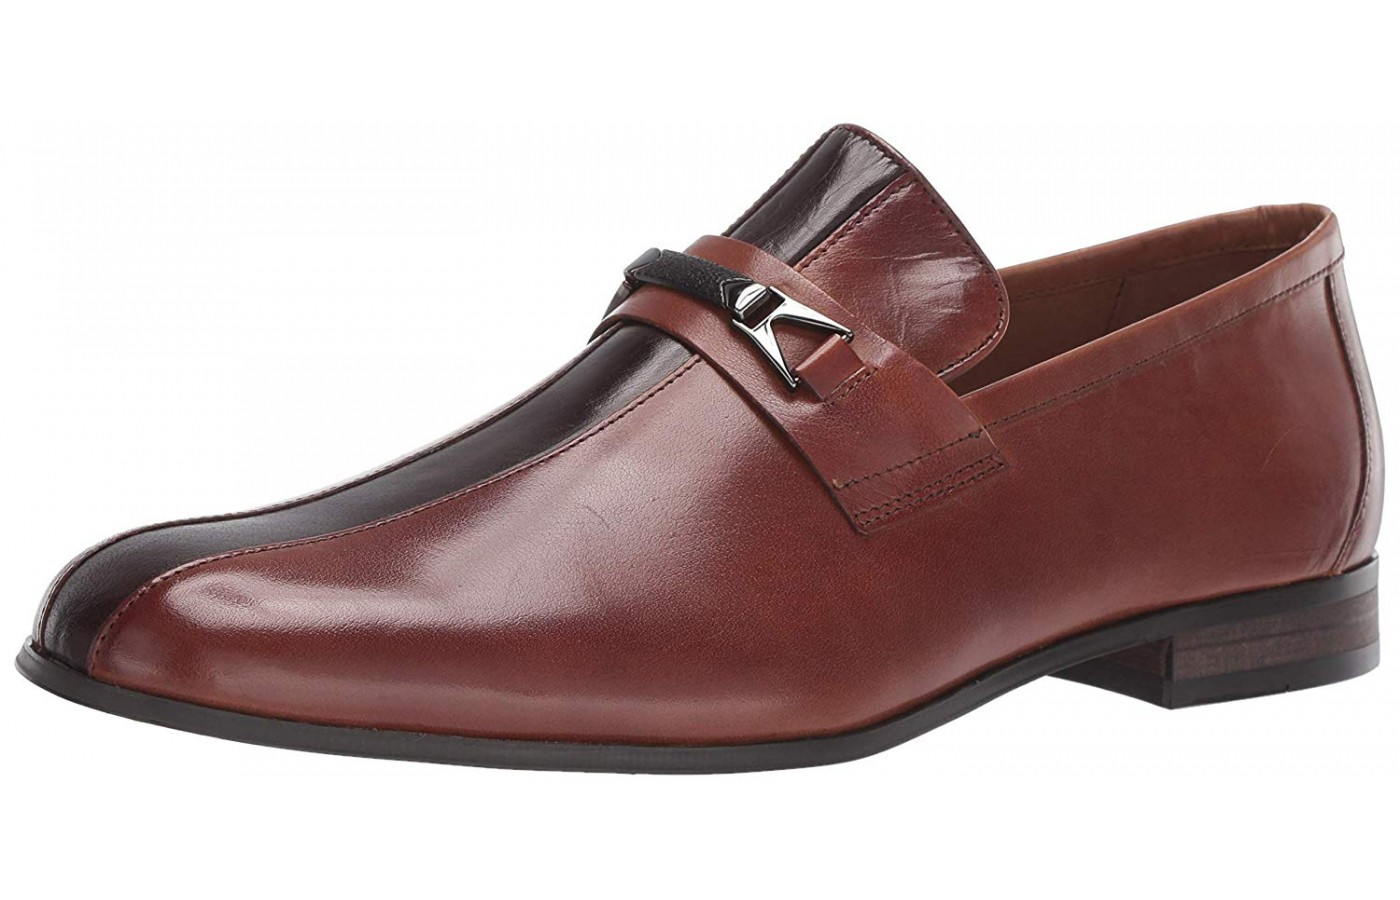 Steve Madden Graft Loafer angle